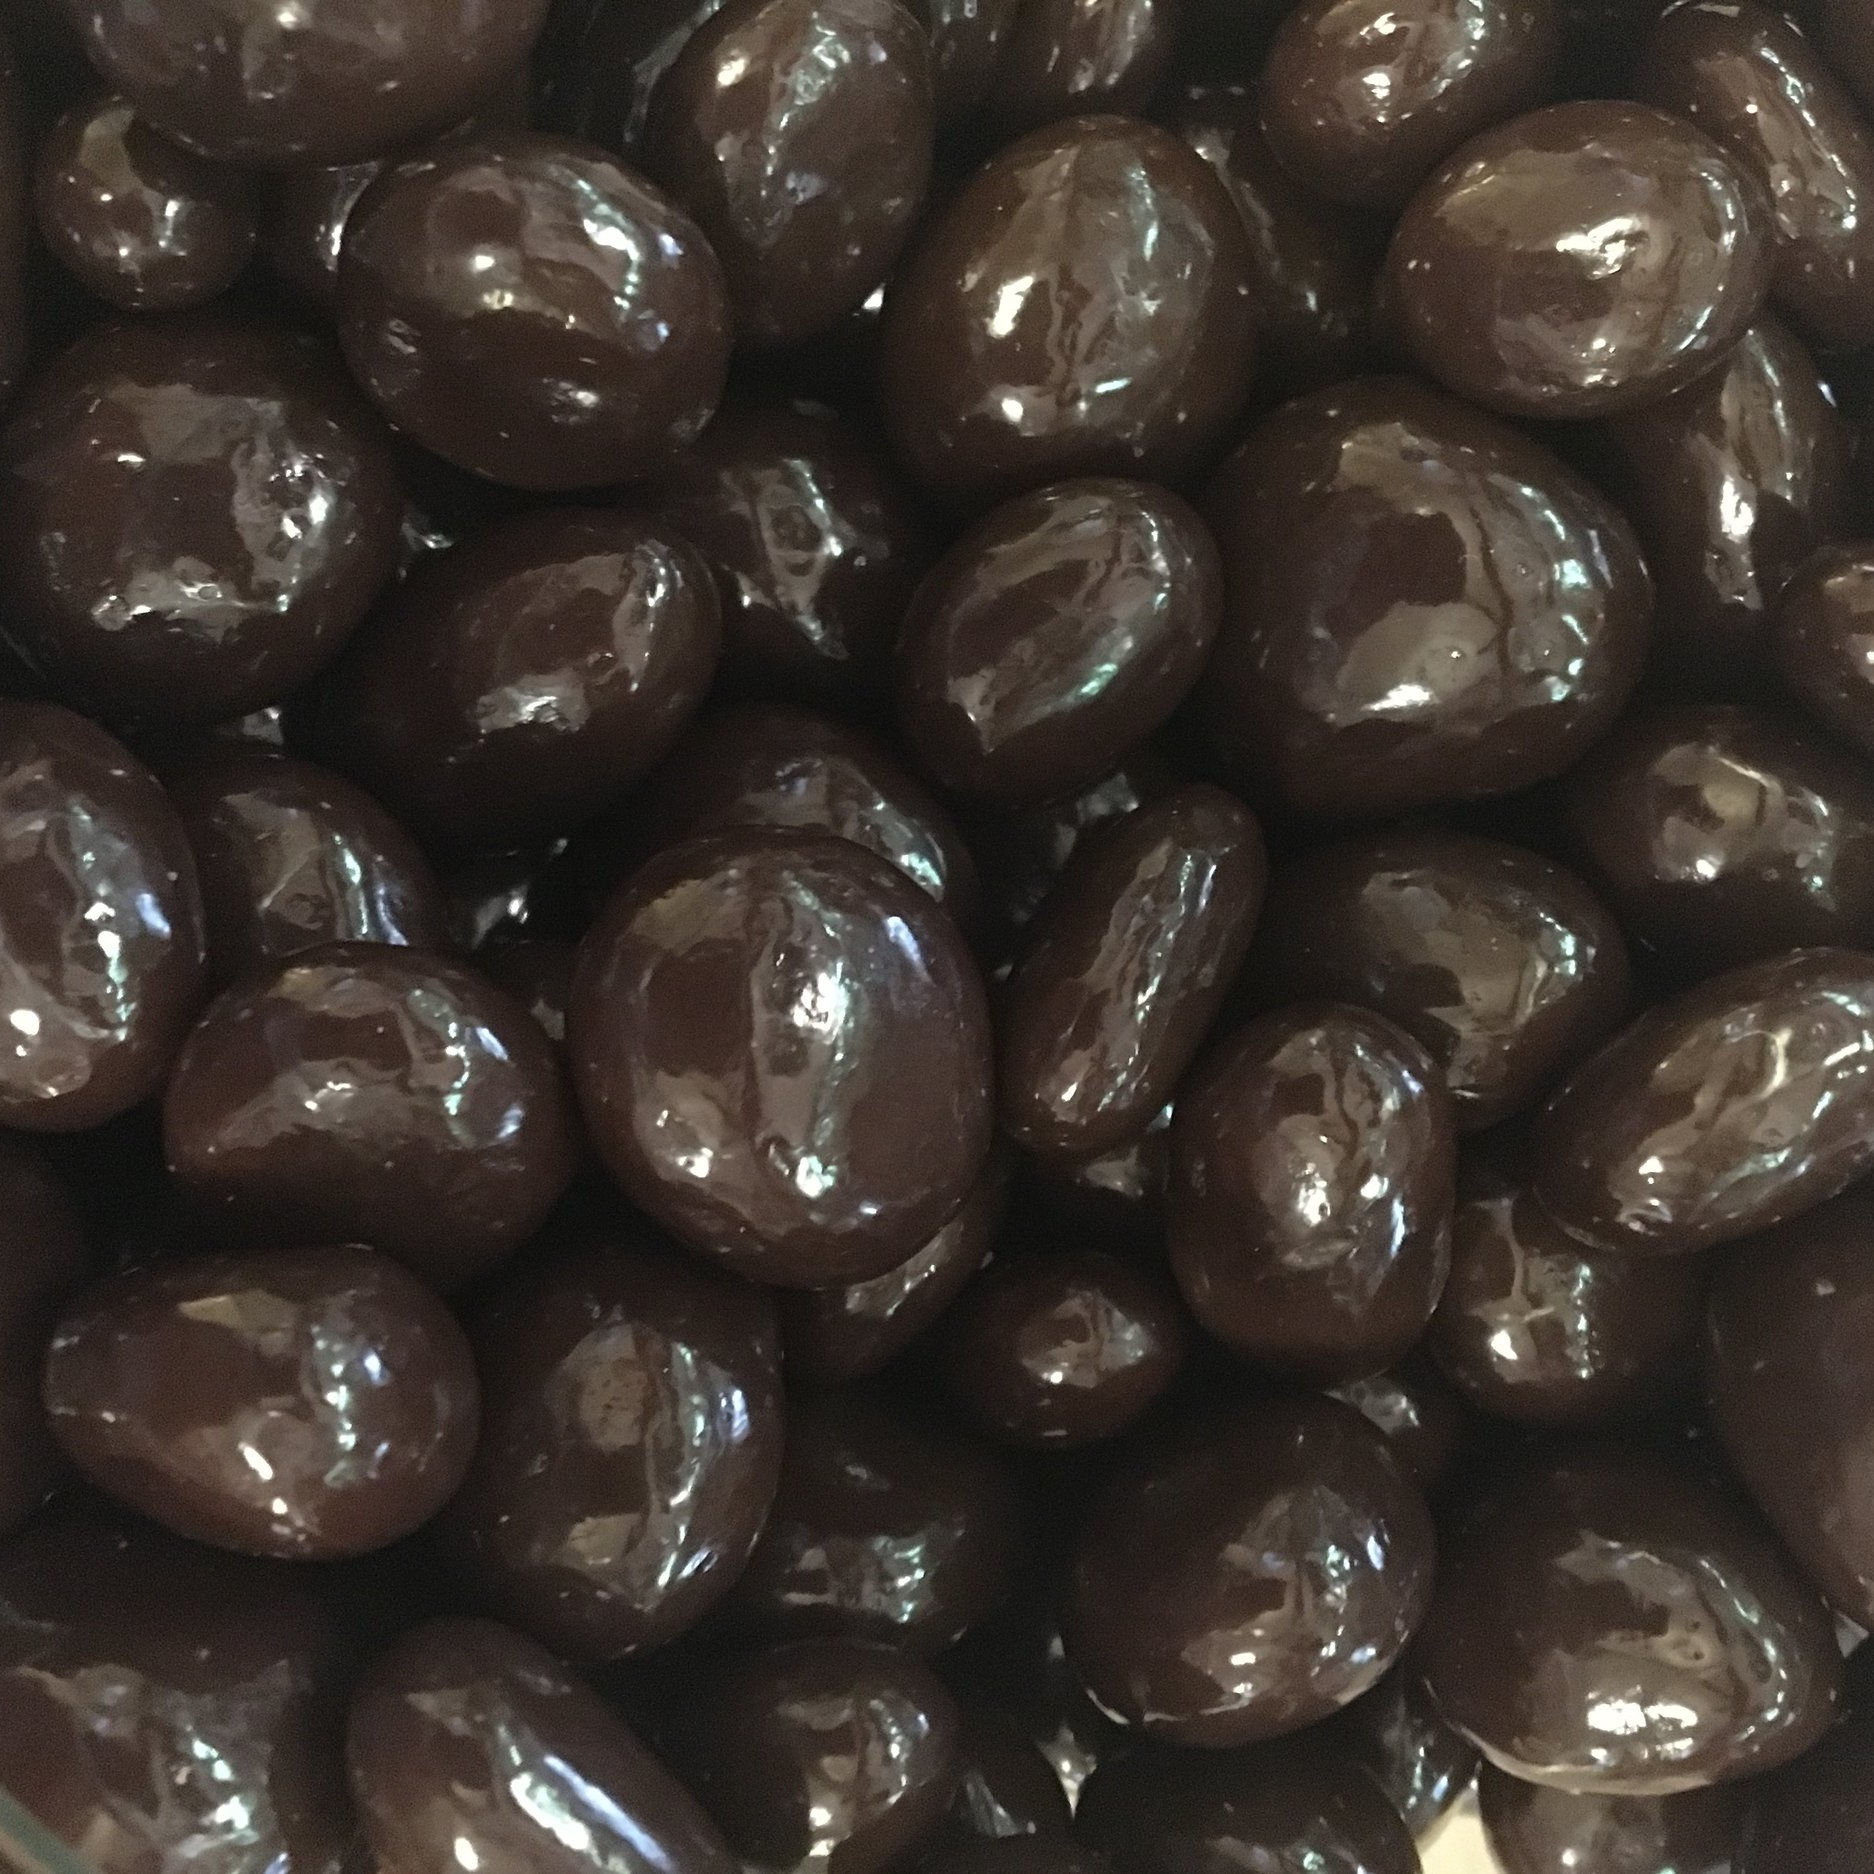 Dark Chocolate Covered Cranberries   72% cocoa